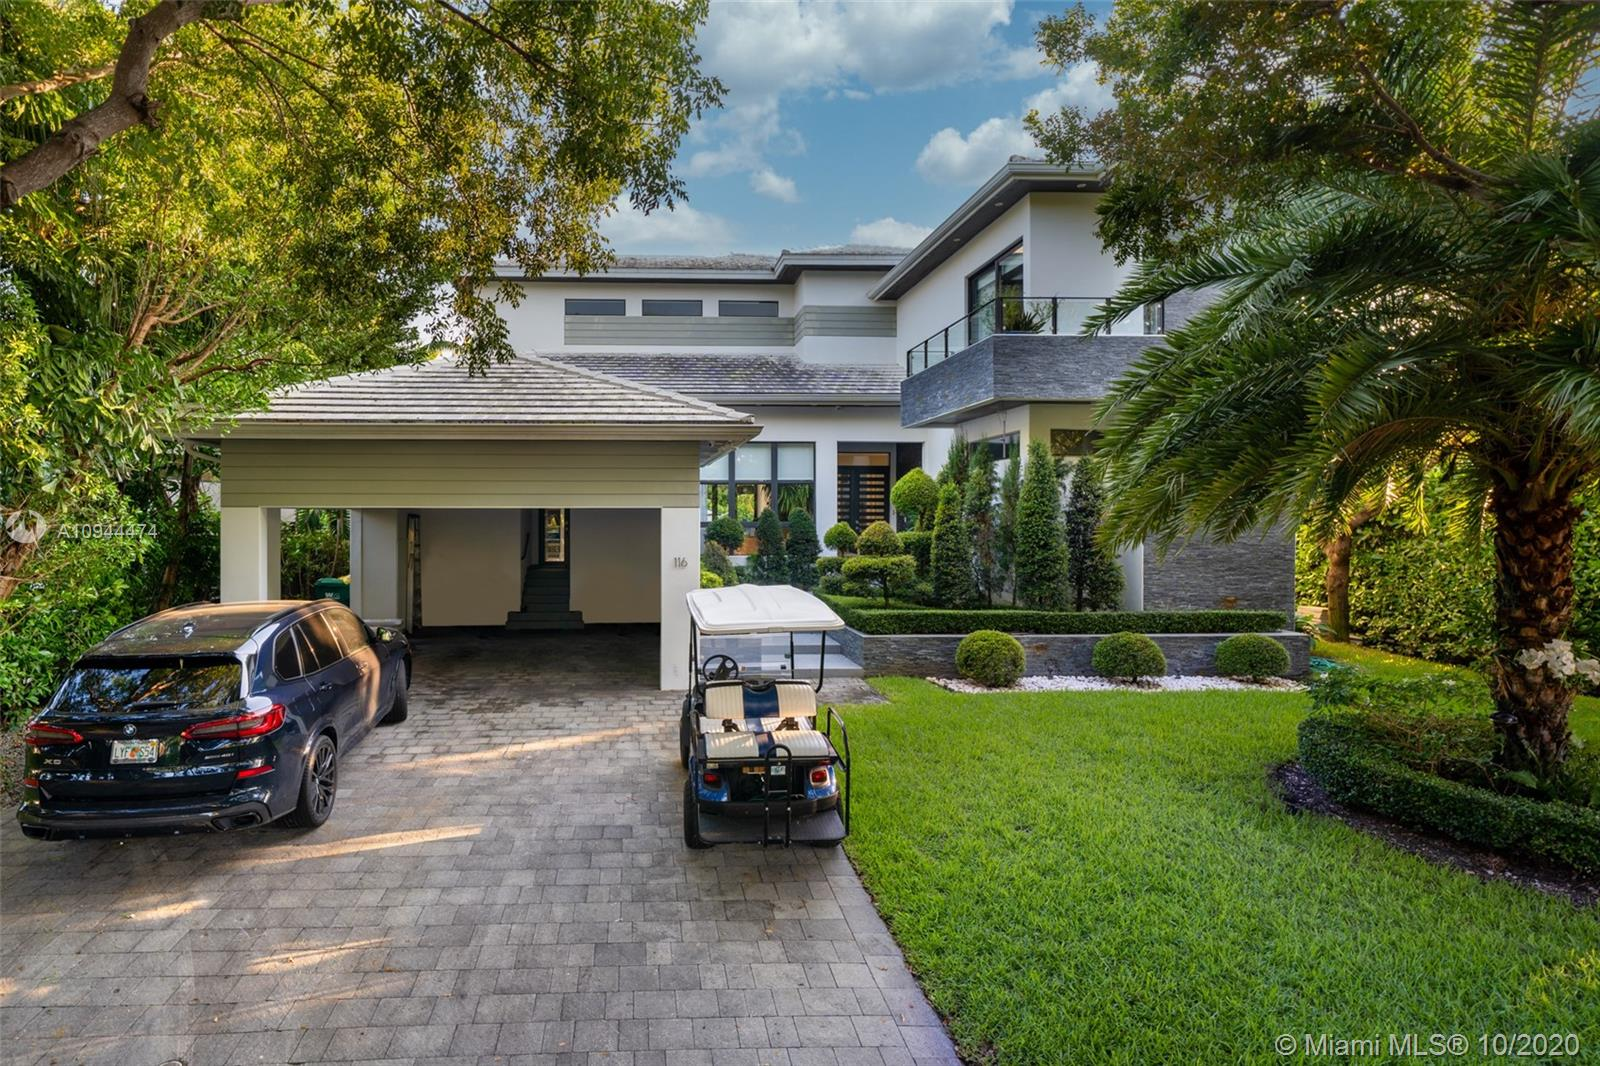 116 W Mashta Dr, Key Biscayne, Florida 33149, 6 Bedrooms Bedrooms, ,6 BathroomsBathrooms,Residential,For Sale,116 W Mashta Dr,A10944474